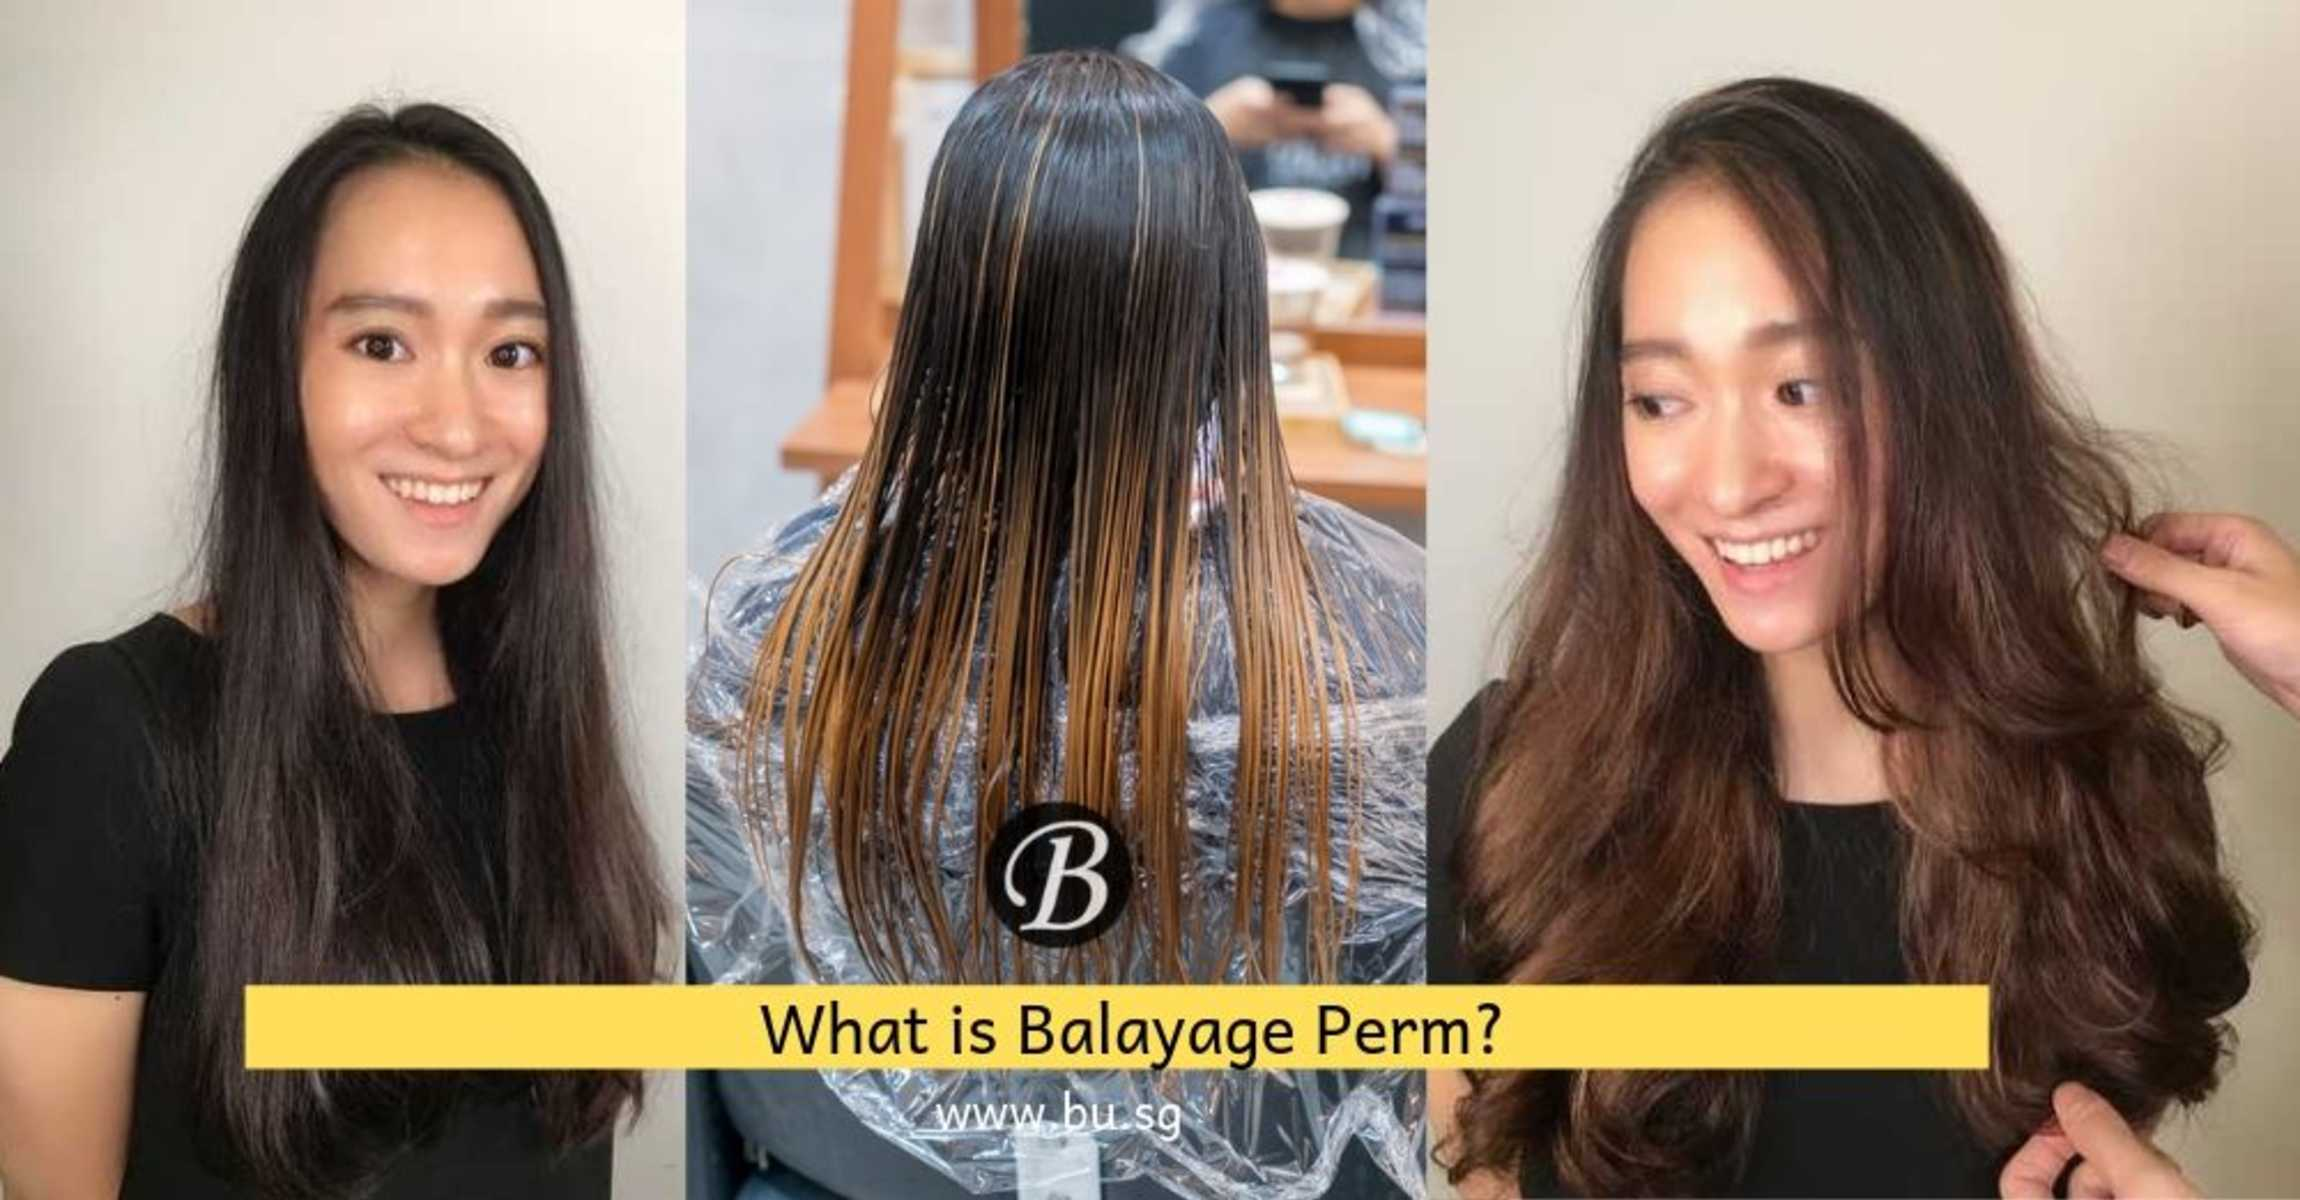 What is Balayage Perm and 5 Things You Need To Know About This New Hair Service